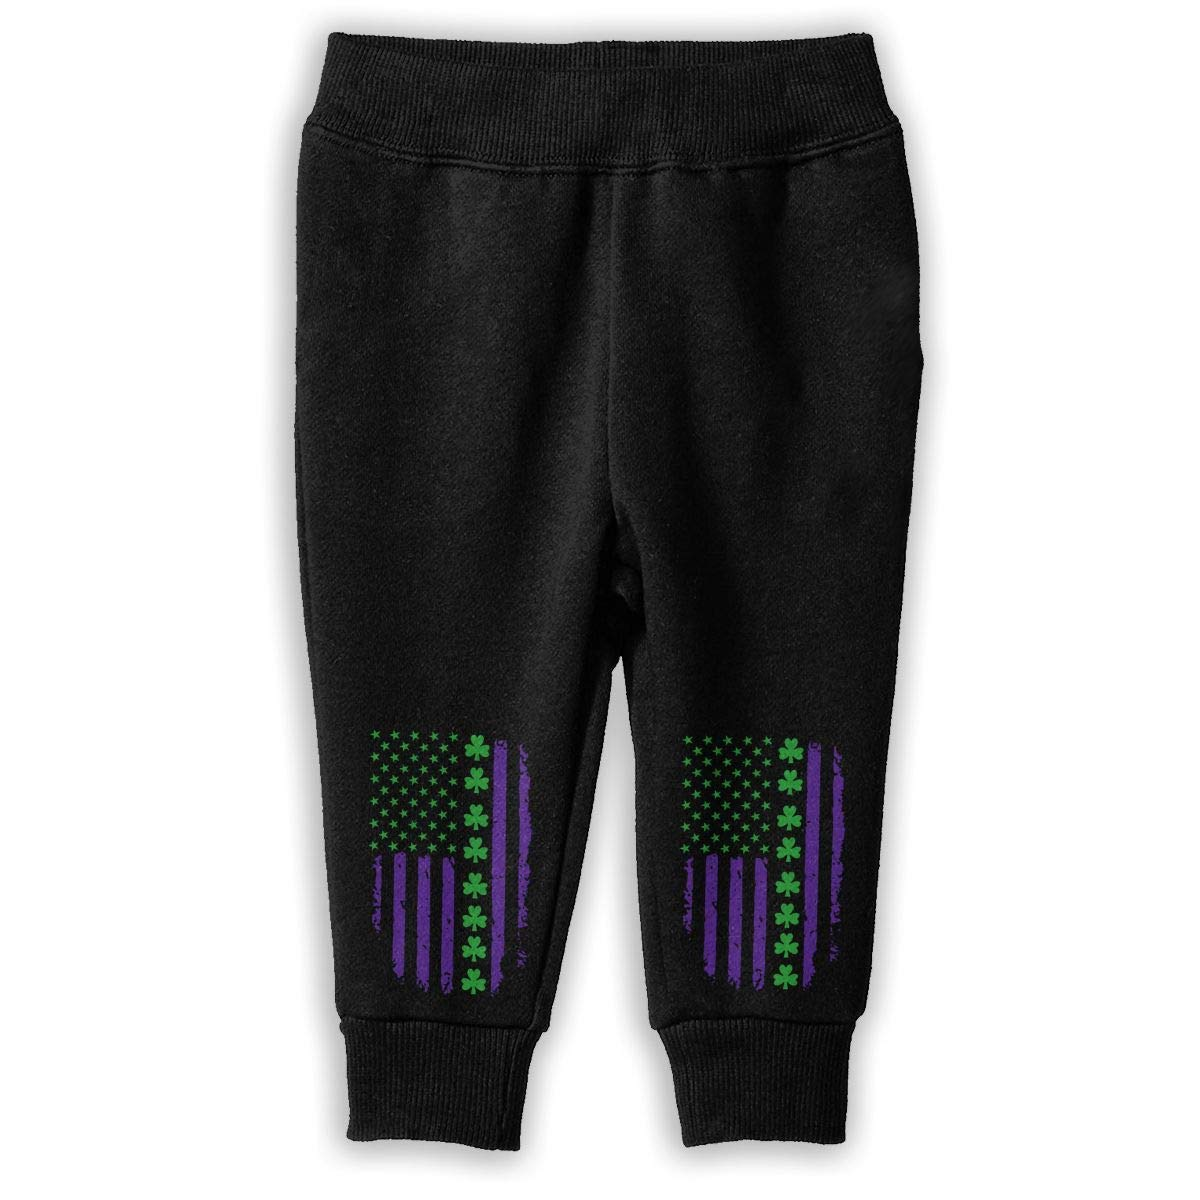 Patricks Day Irish American Flag Childrens Boys /& Girls Unisex Running Sweatpants Printed St